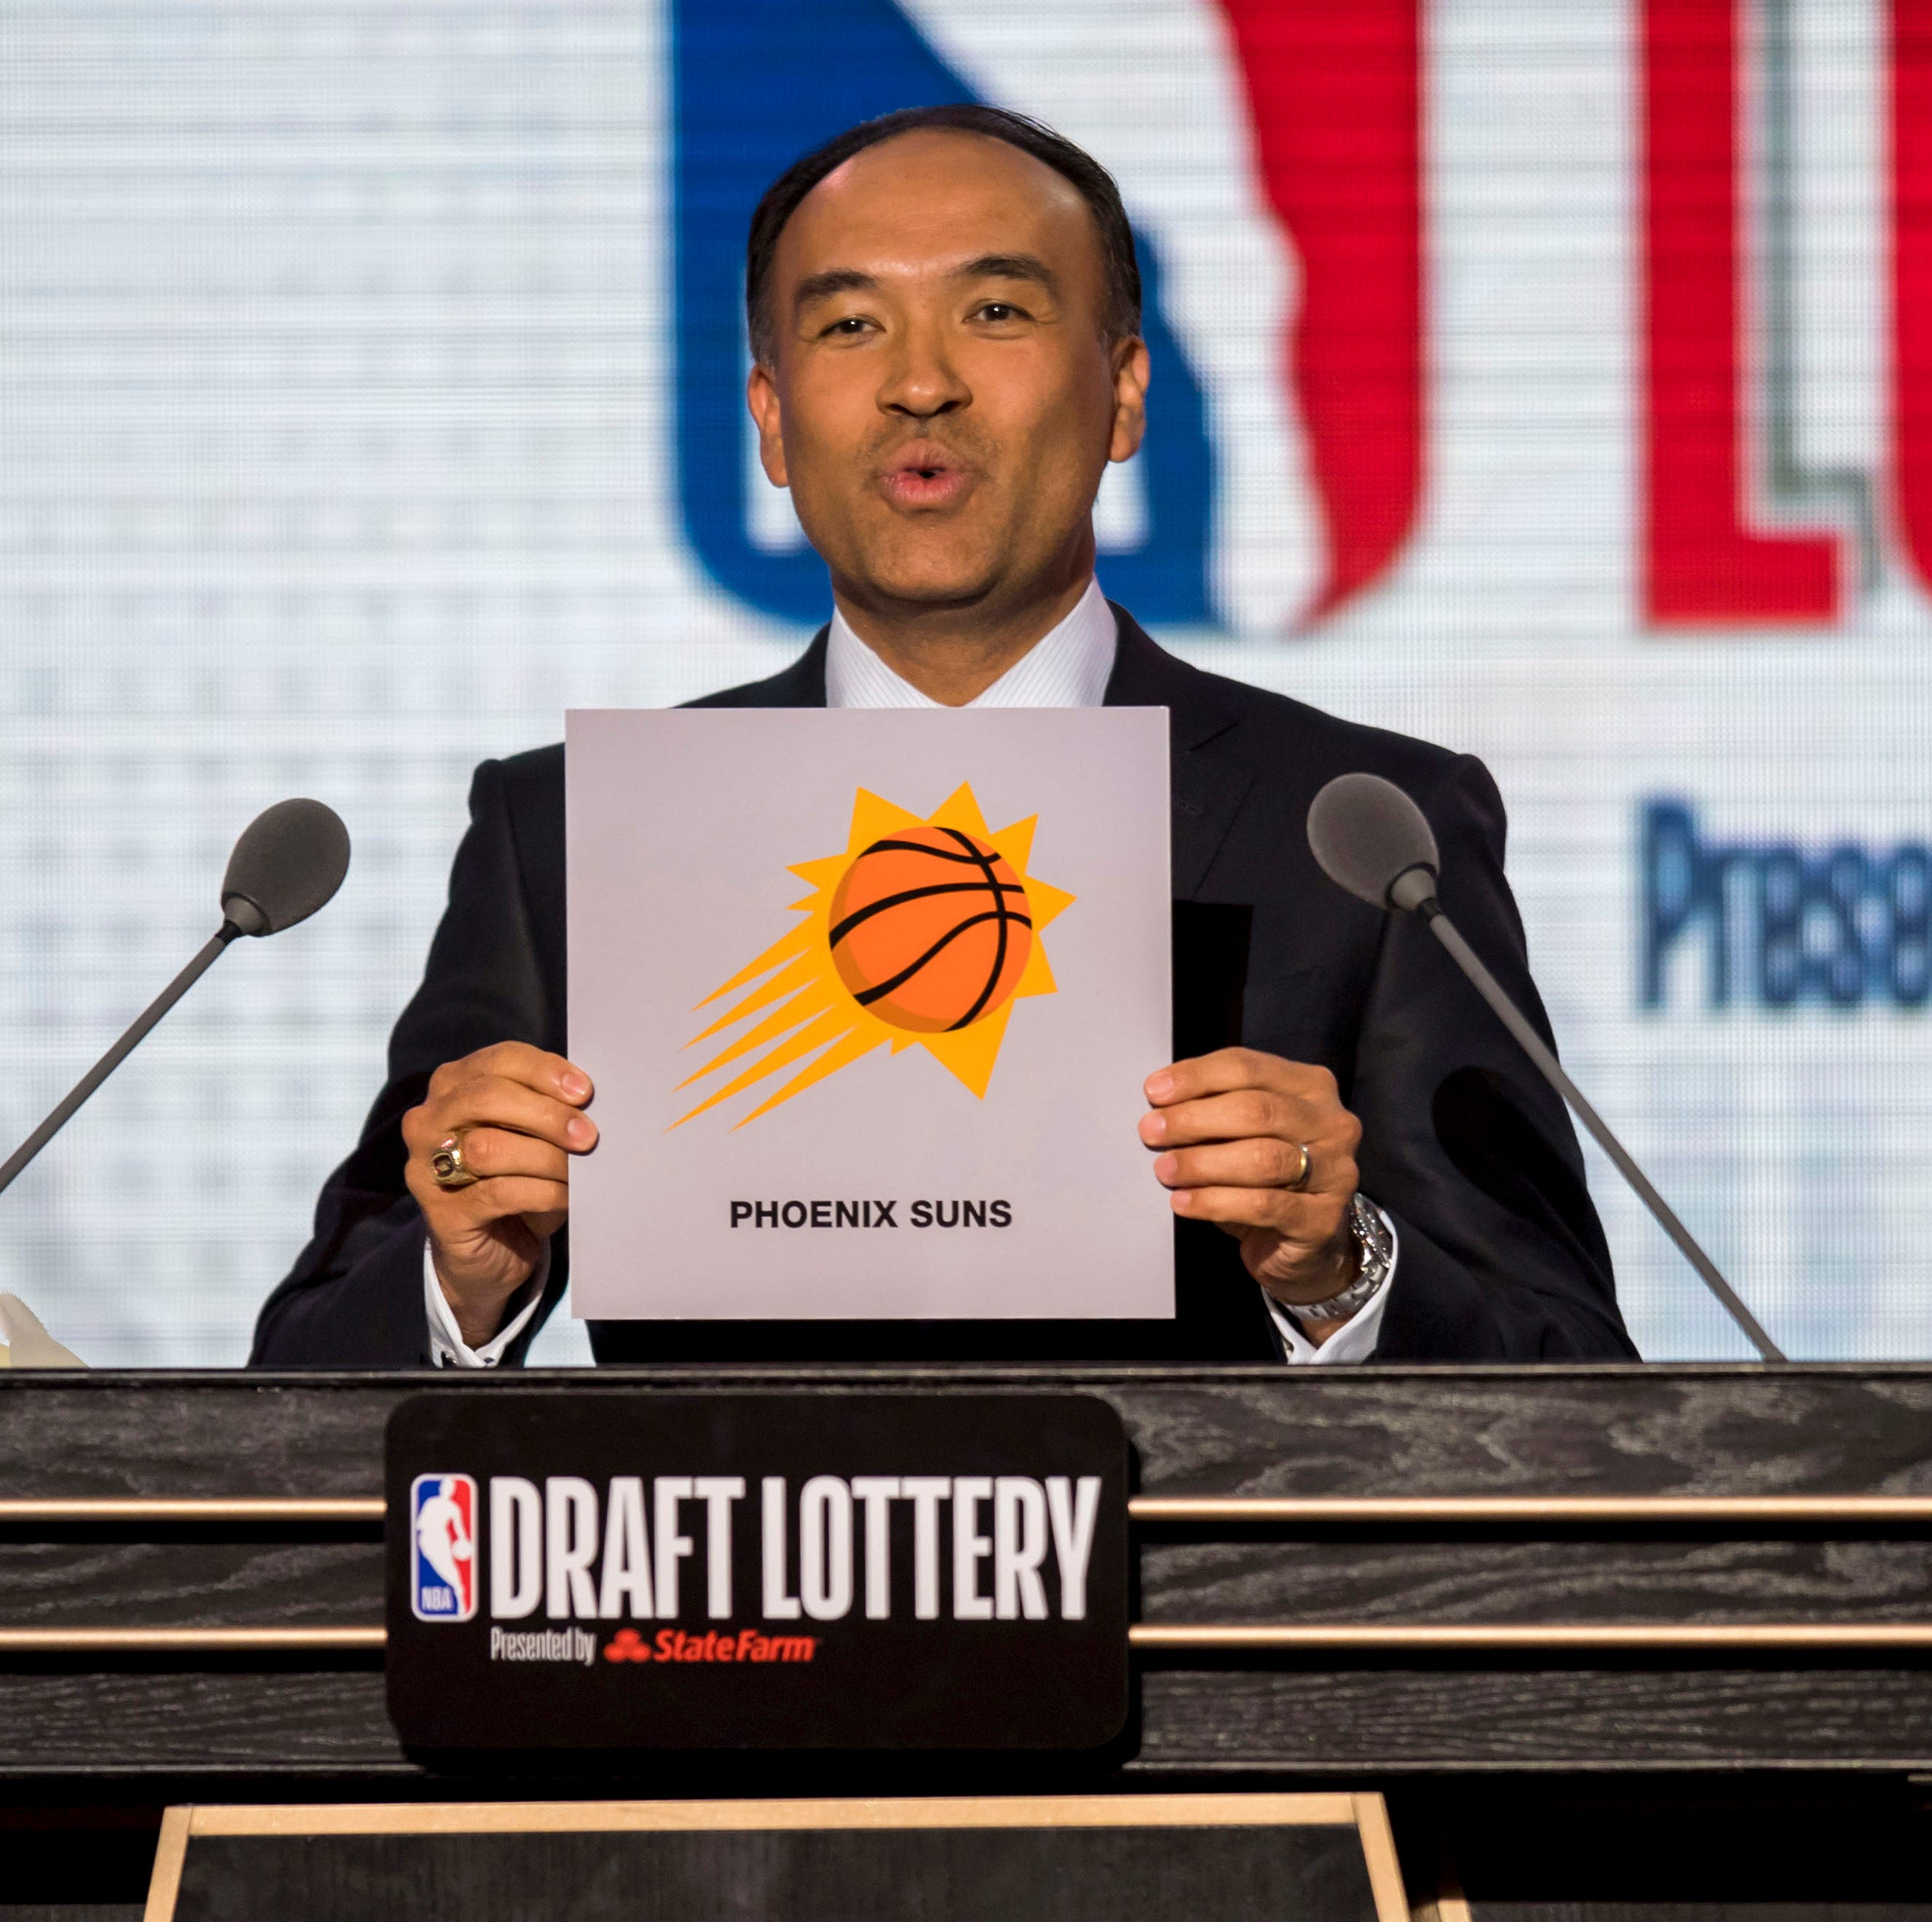 NBA draft lottery odds: Suns, Knicks and Cavaliers have same chance at No. 1 pick